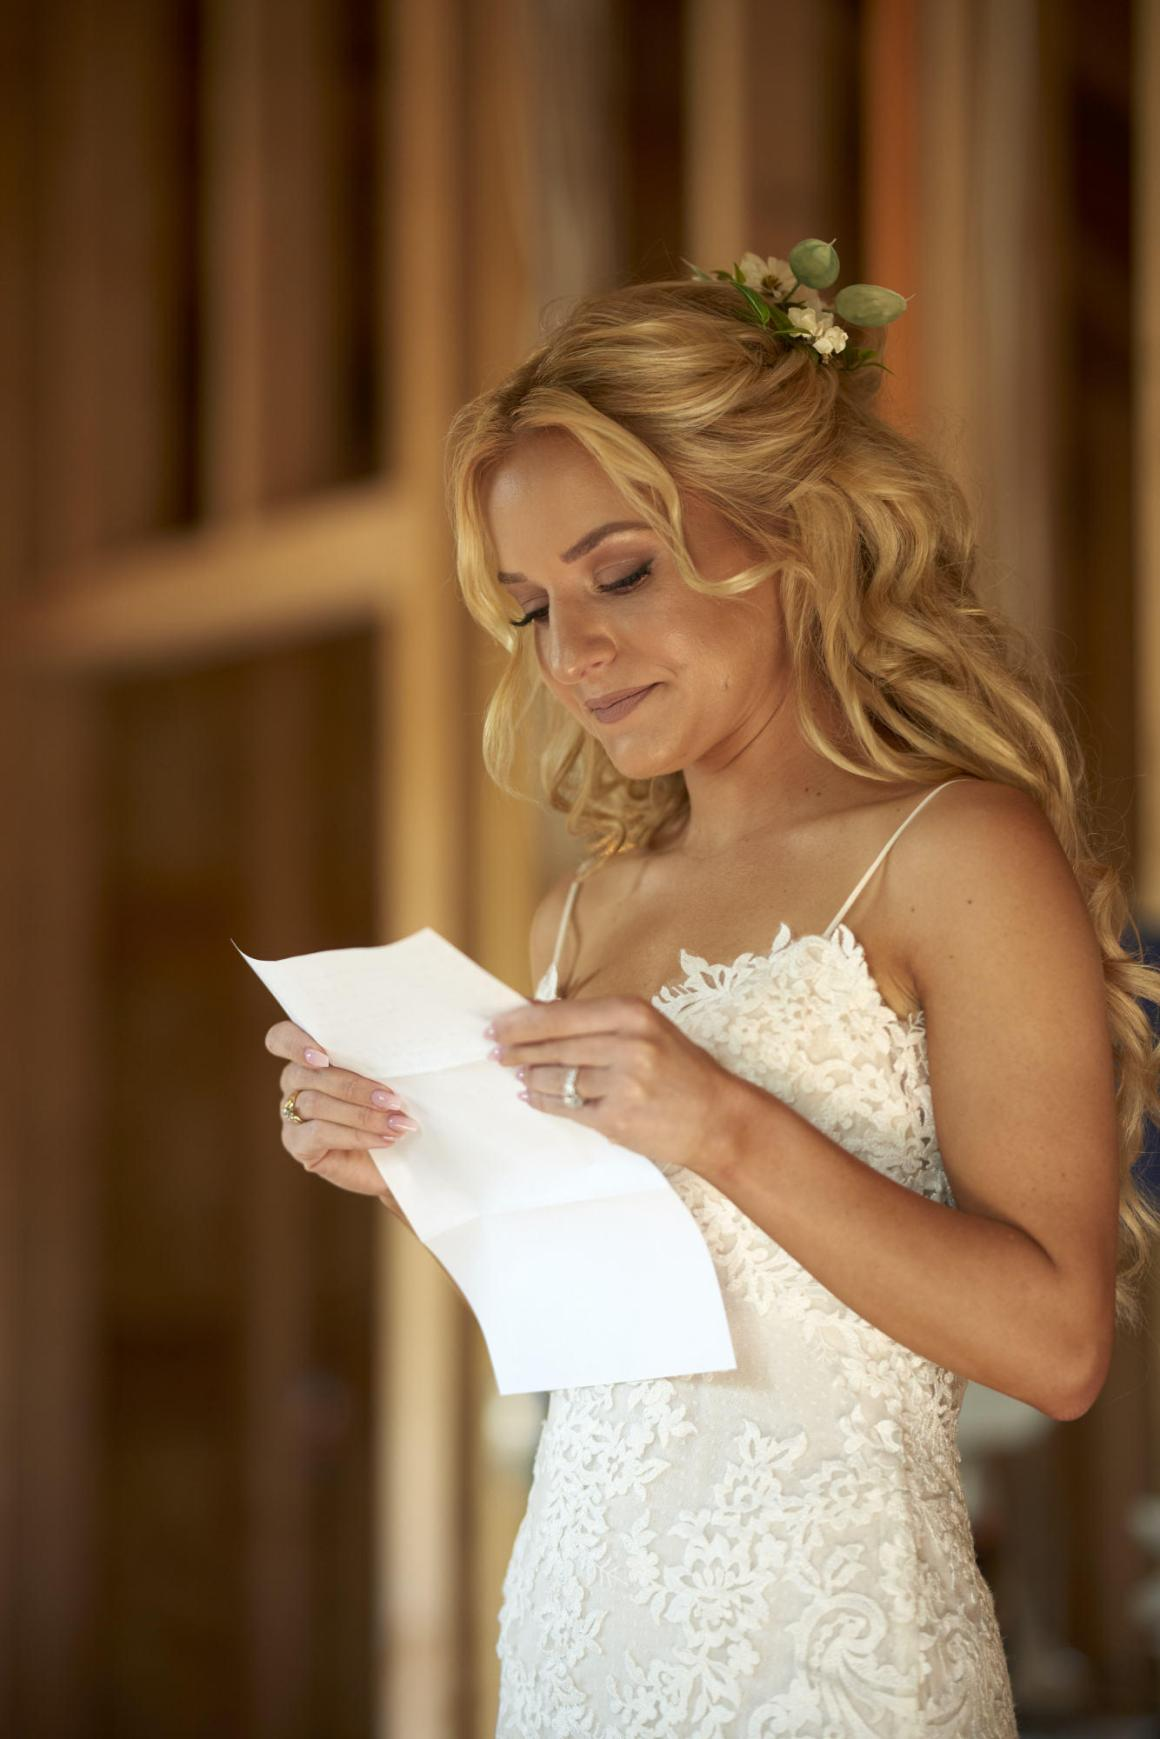 Bride reading note from the groom before the wedding.